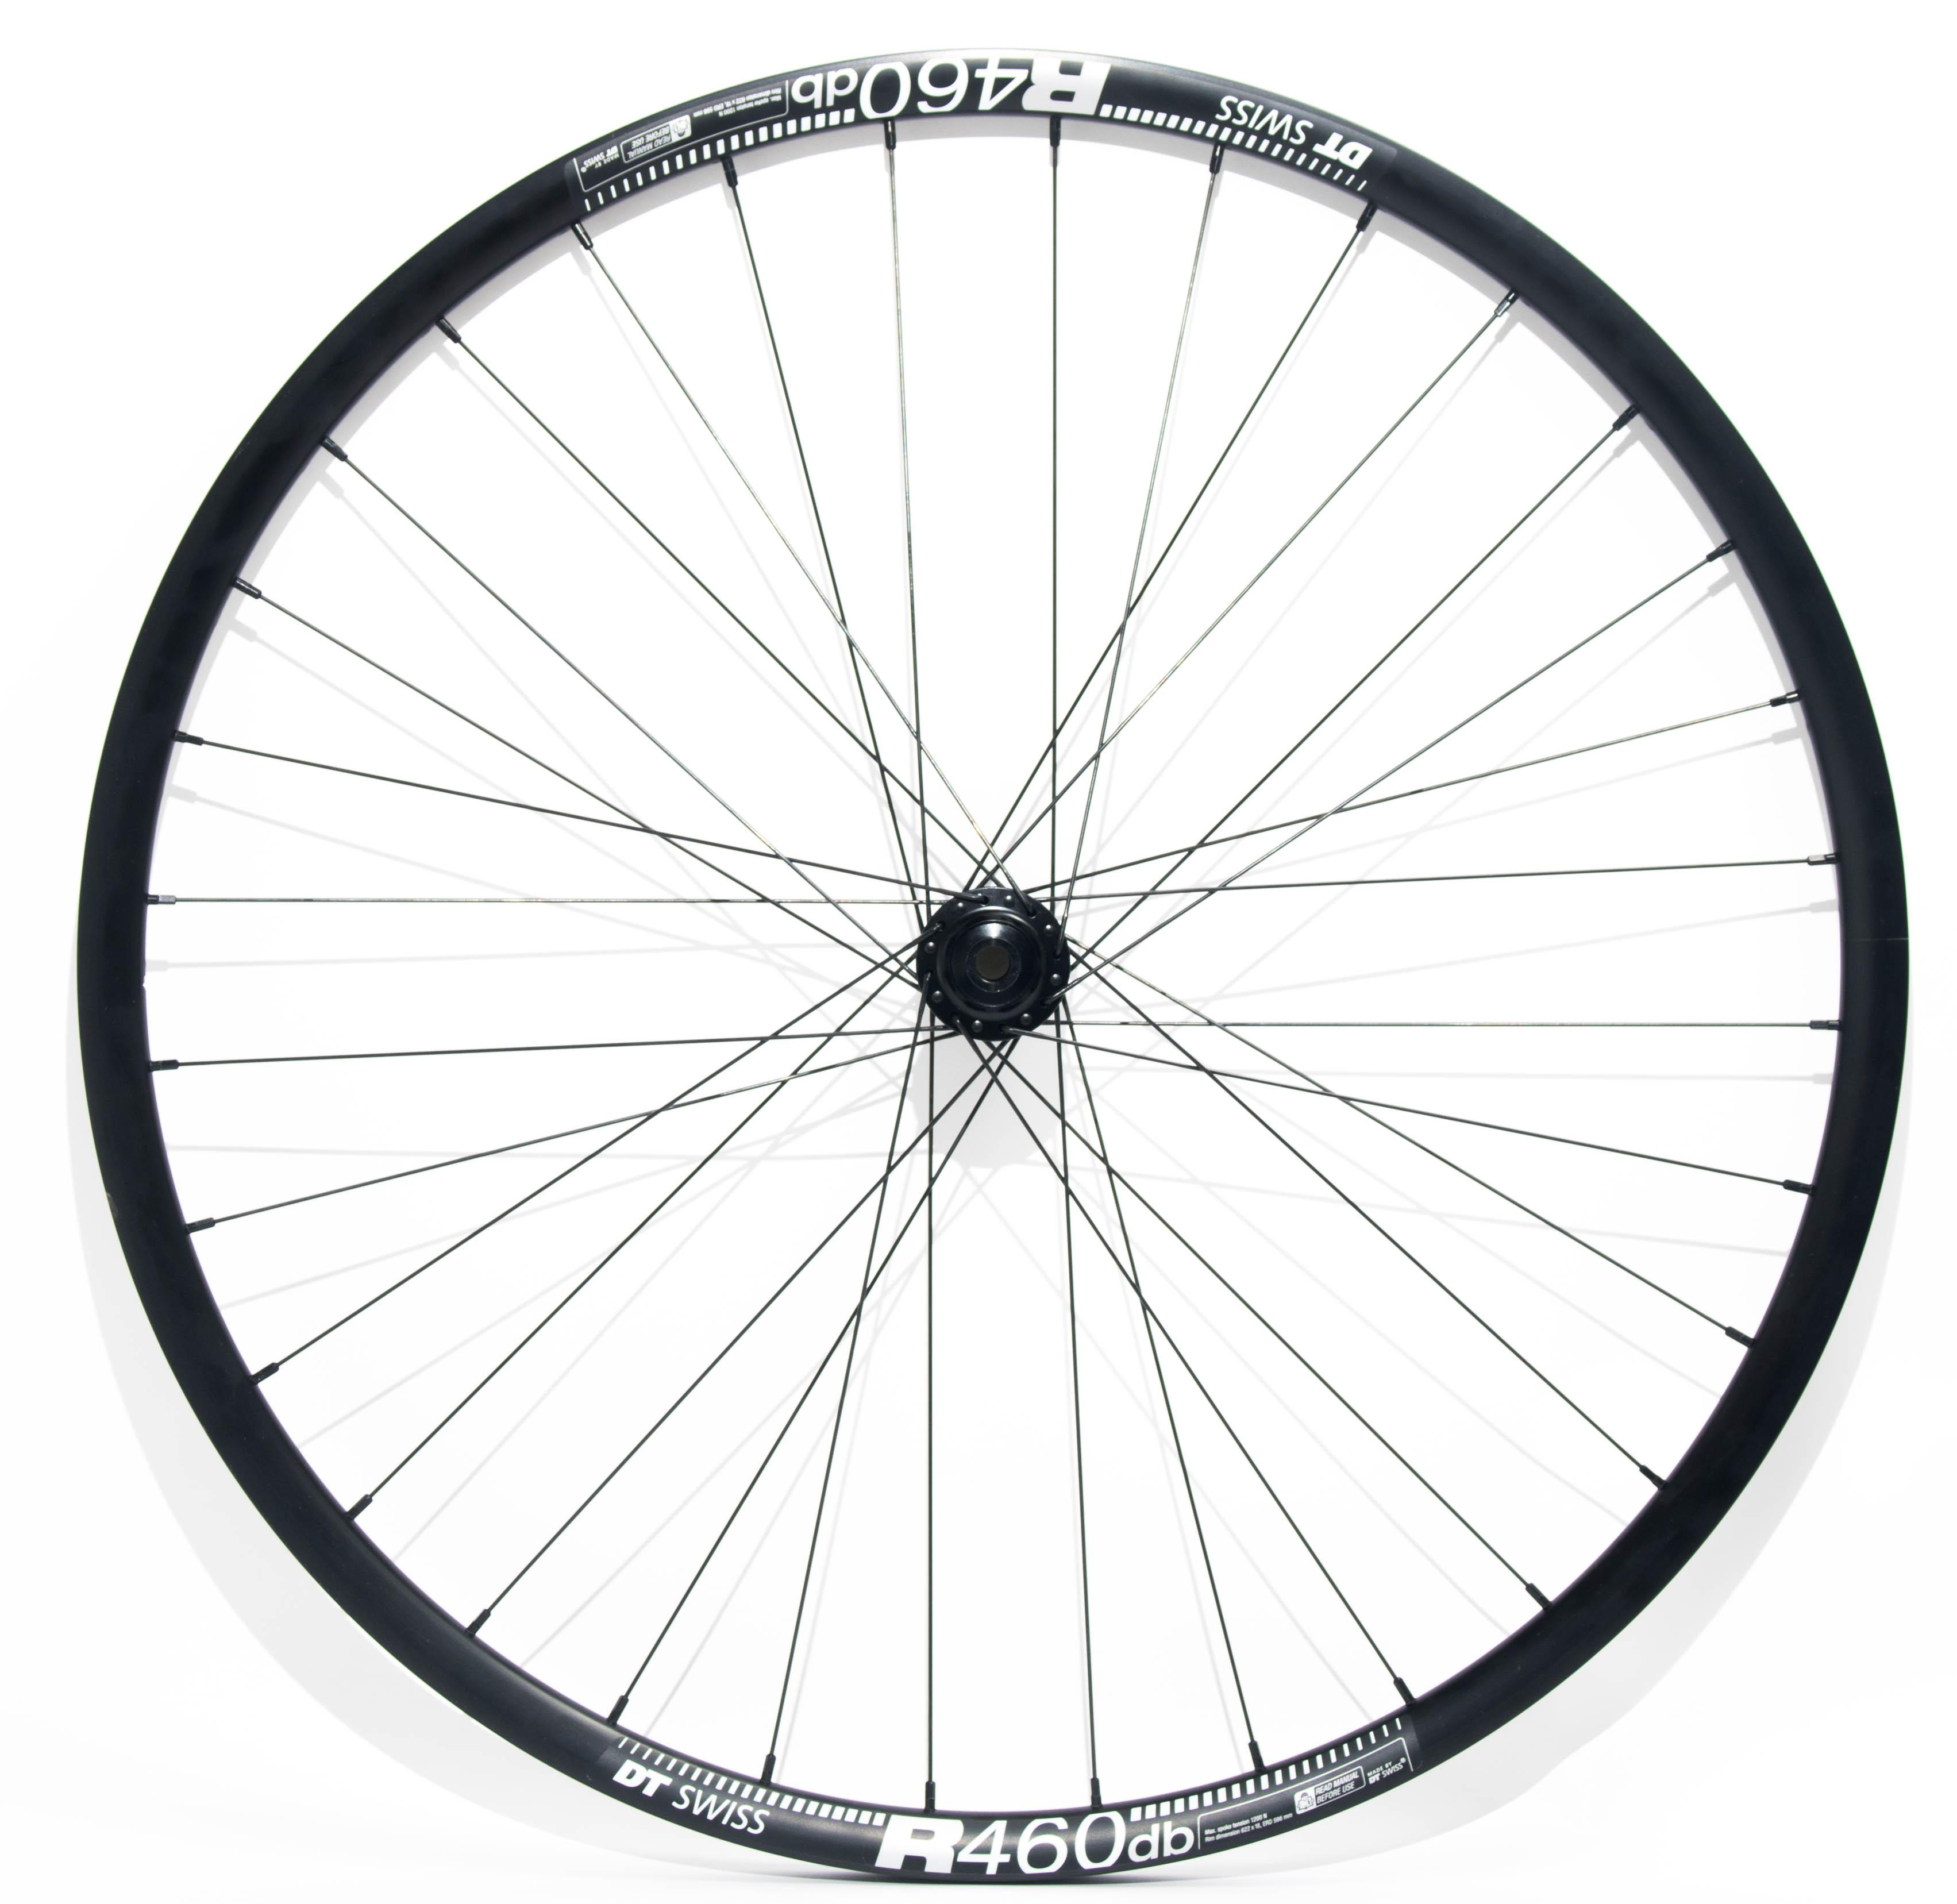 Laufradsatz, DT Swiss R 460 Disc Felge,DT Swiss 350 Nabe, Clincher - Naben: IS 6-bolt, oh. SNSP 32L